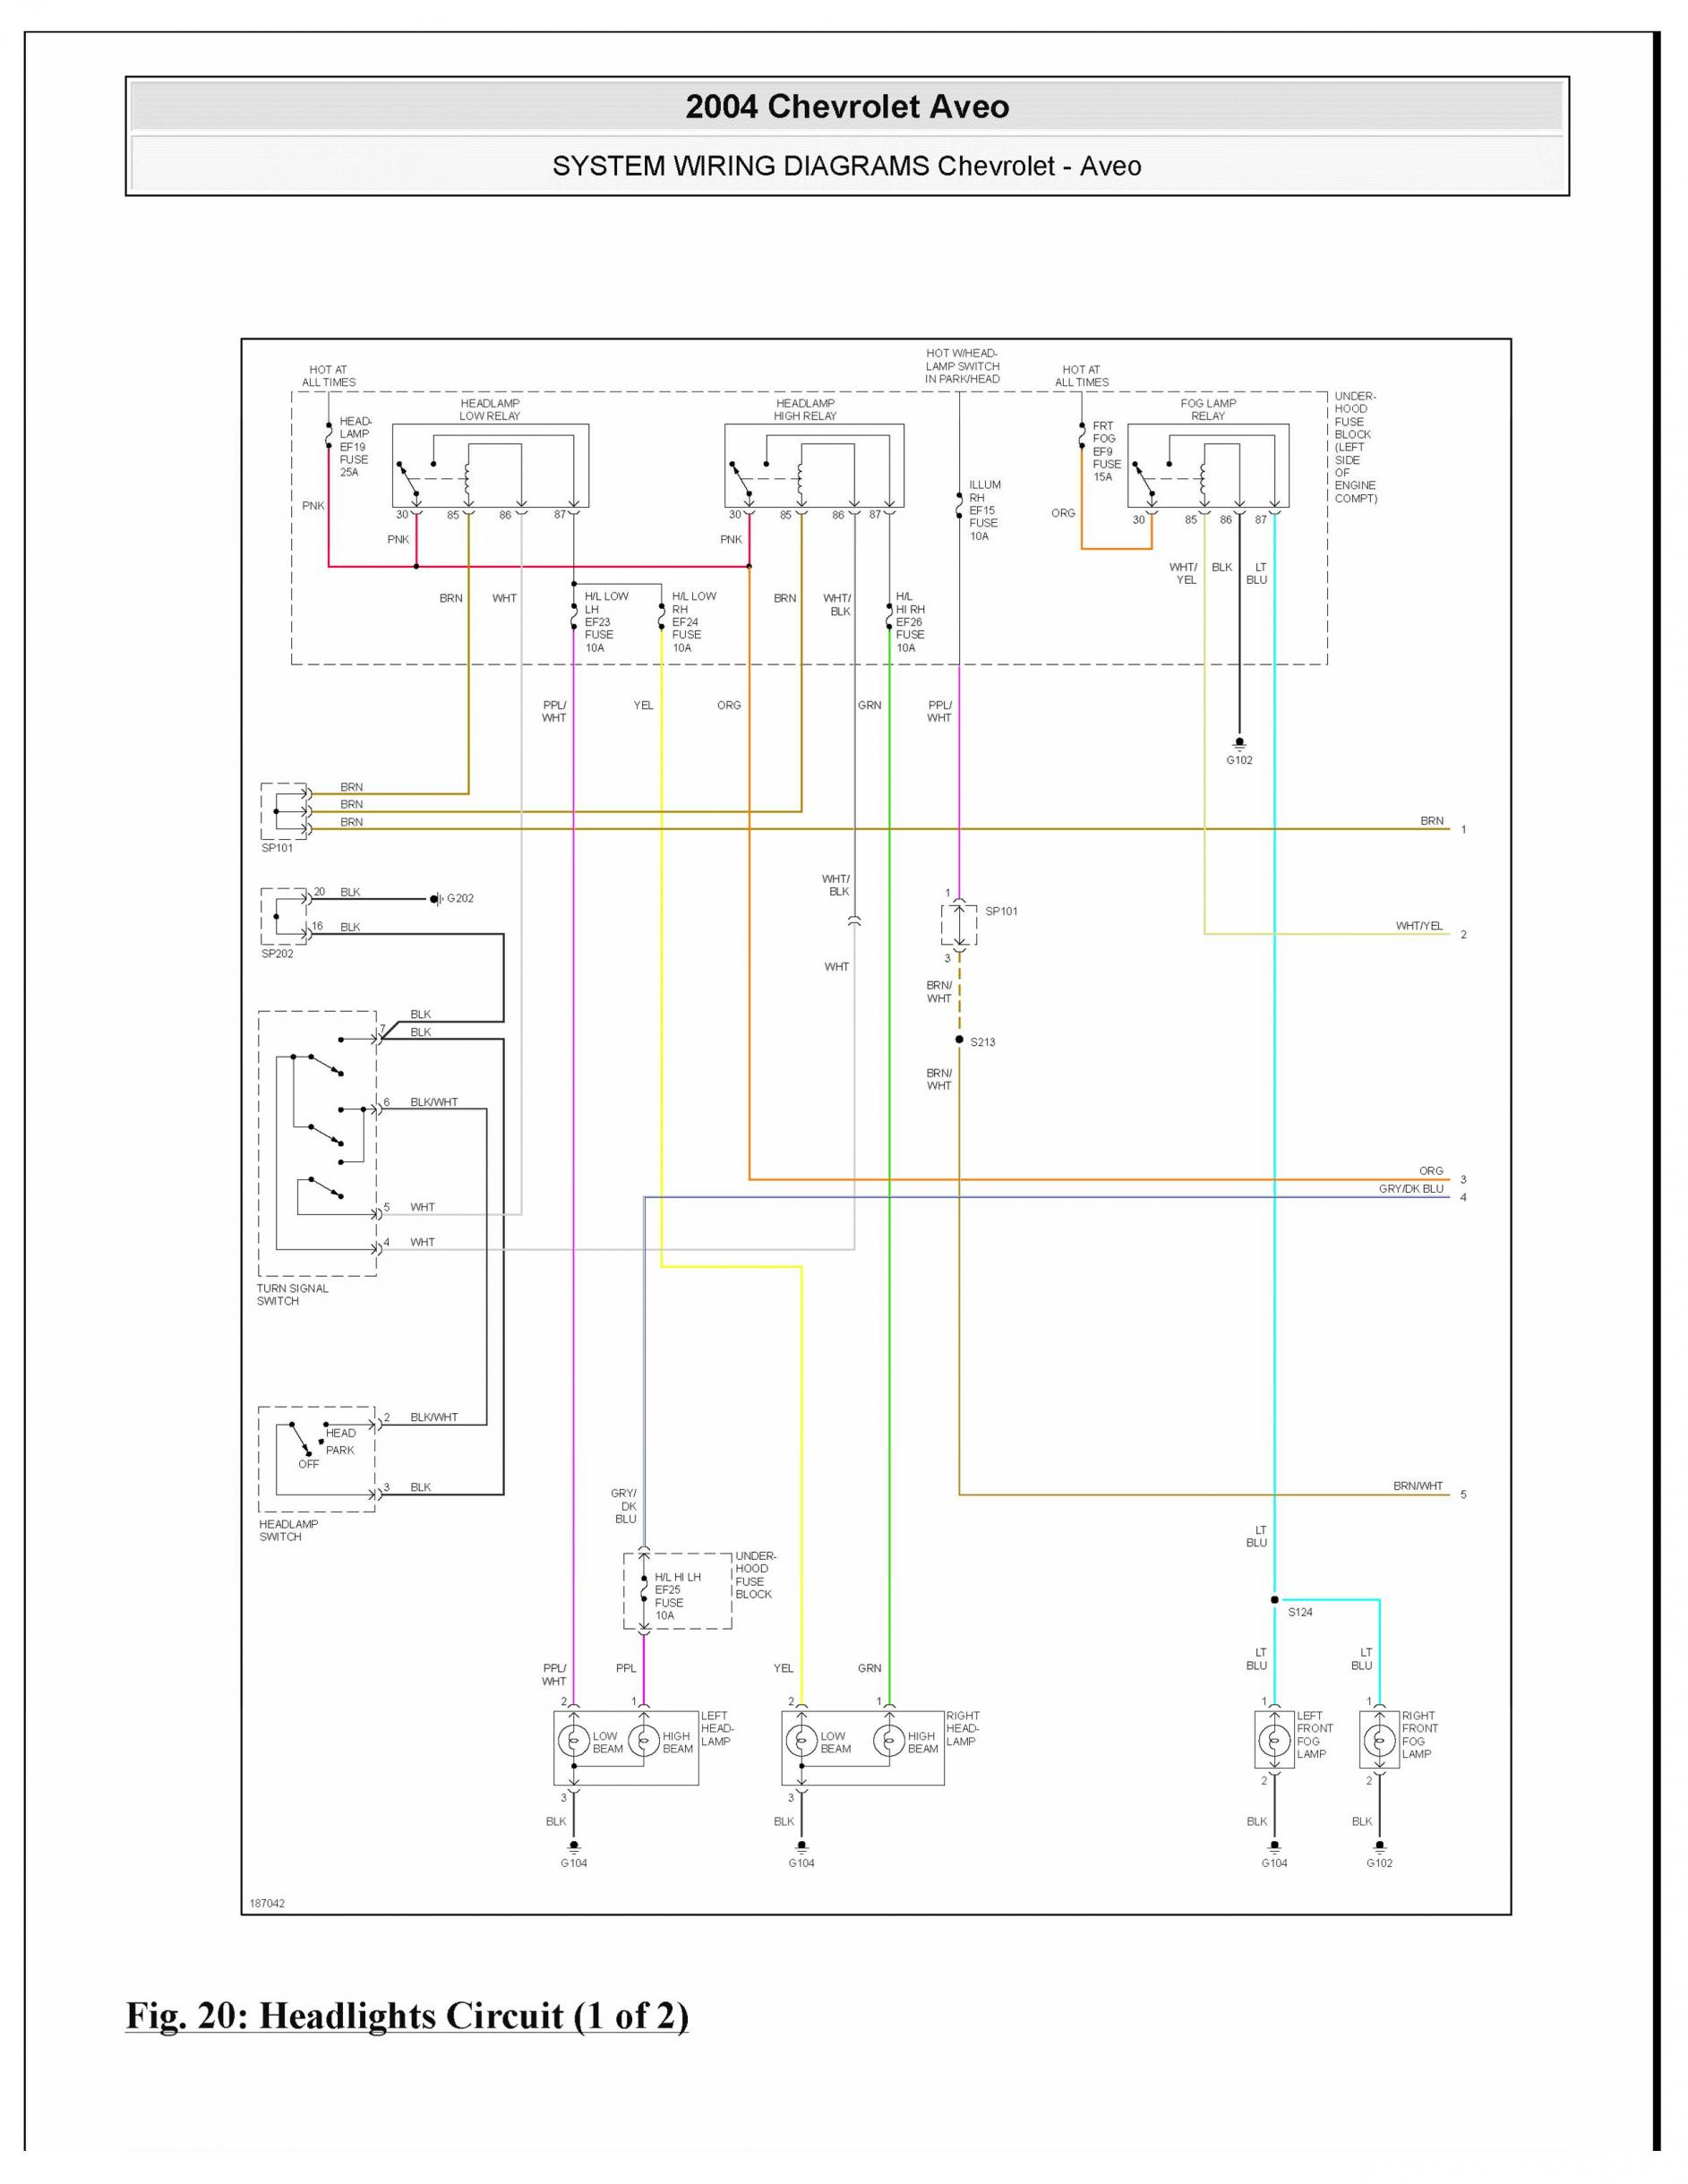 2005 Aveo Wiring Diagram Automotive 2007 Hhr Stereo Chevy Library Rh 63 Codingcommunity De Radio